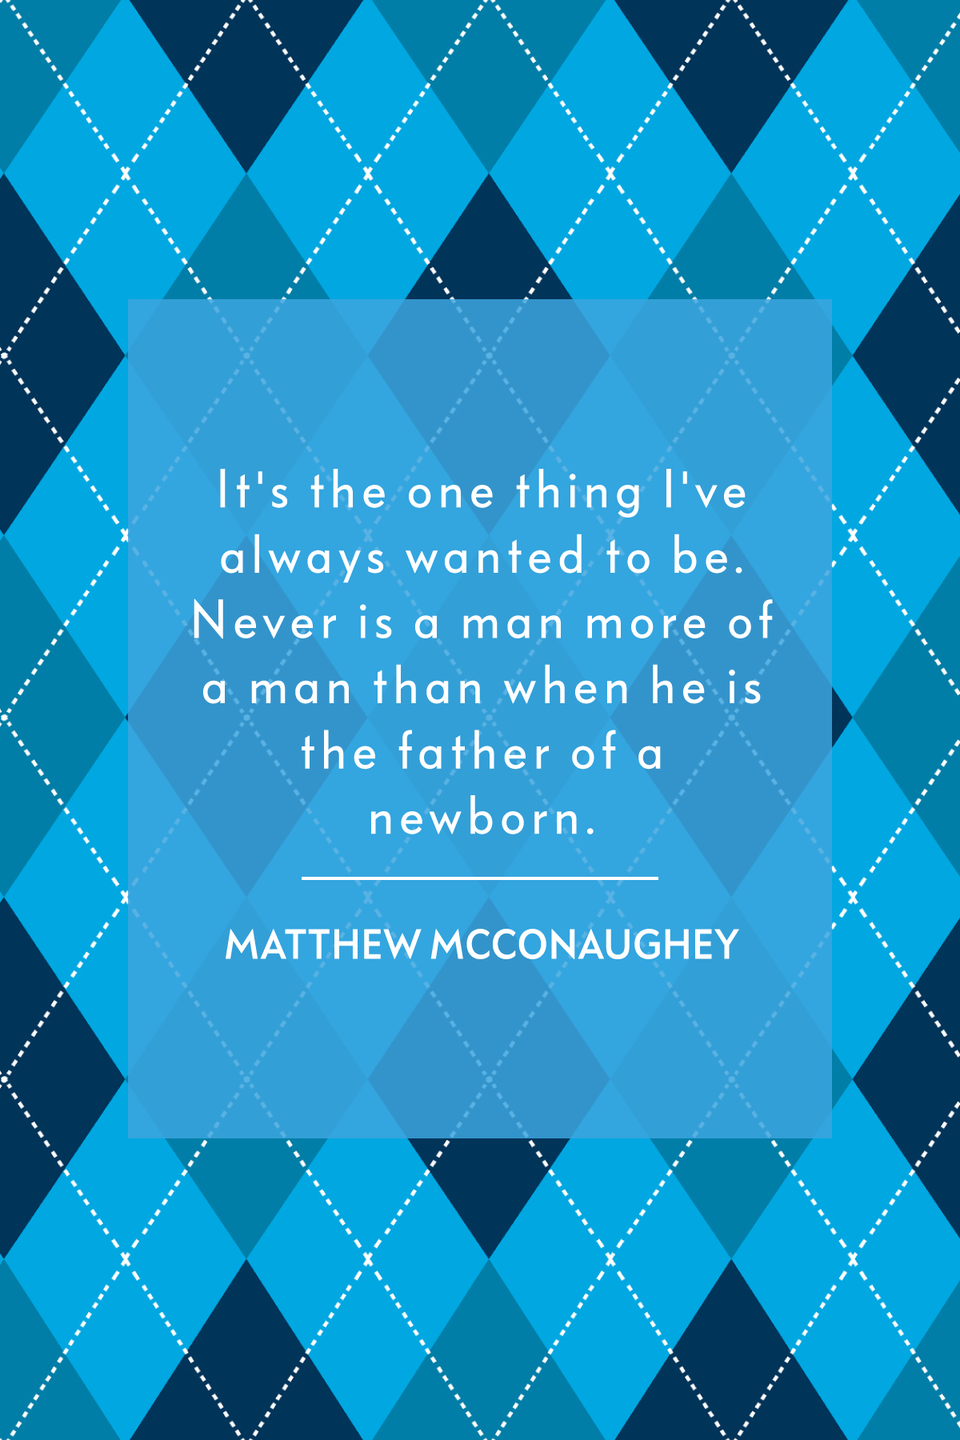 """<p>""""It's the one thing I've always wanted to be. Never is a man more of a man than when he is the father of a newborn,"""" the Oscar-award winning actor told <em><a href=""""https://www.gq.com/story/matthew-mcconaughey-career?currentPage=1"""" rel=""""nofollow noopener"""" target=""""_blank"""" data-ylk=""""slk:GQ"""" class=""""link rapid-noclick-resp"""">GQ</a></em> in a 2014 interview. </p>"""